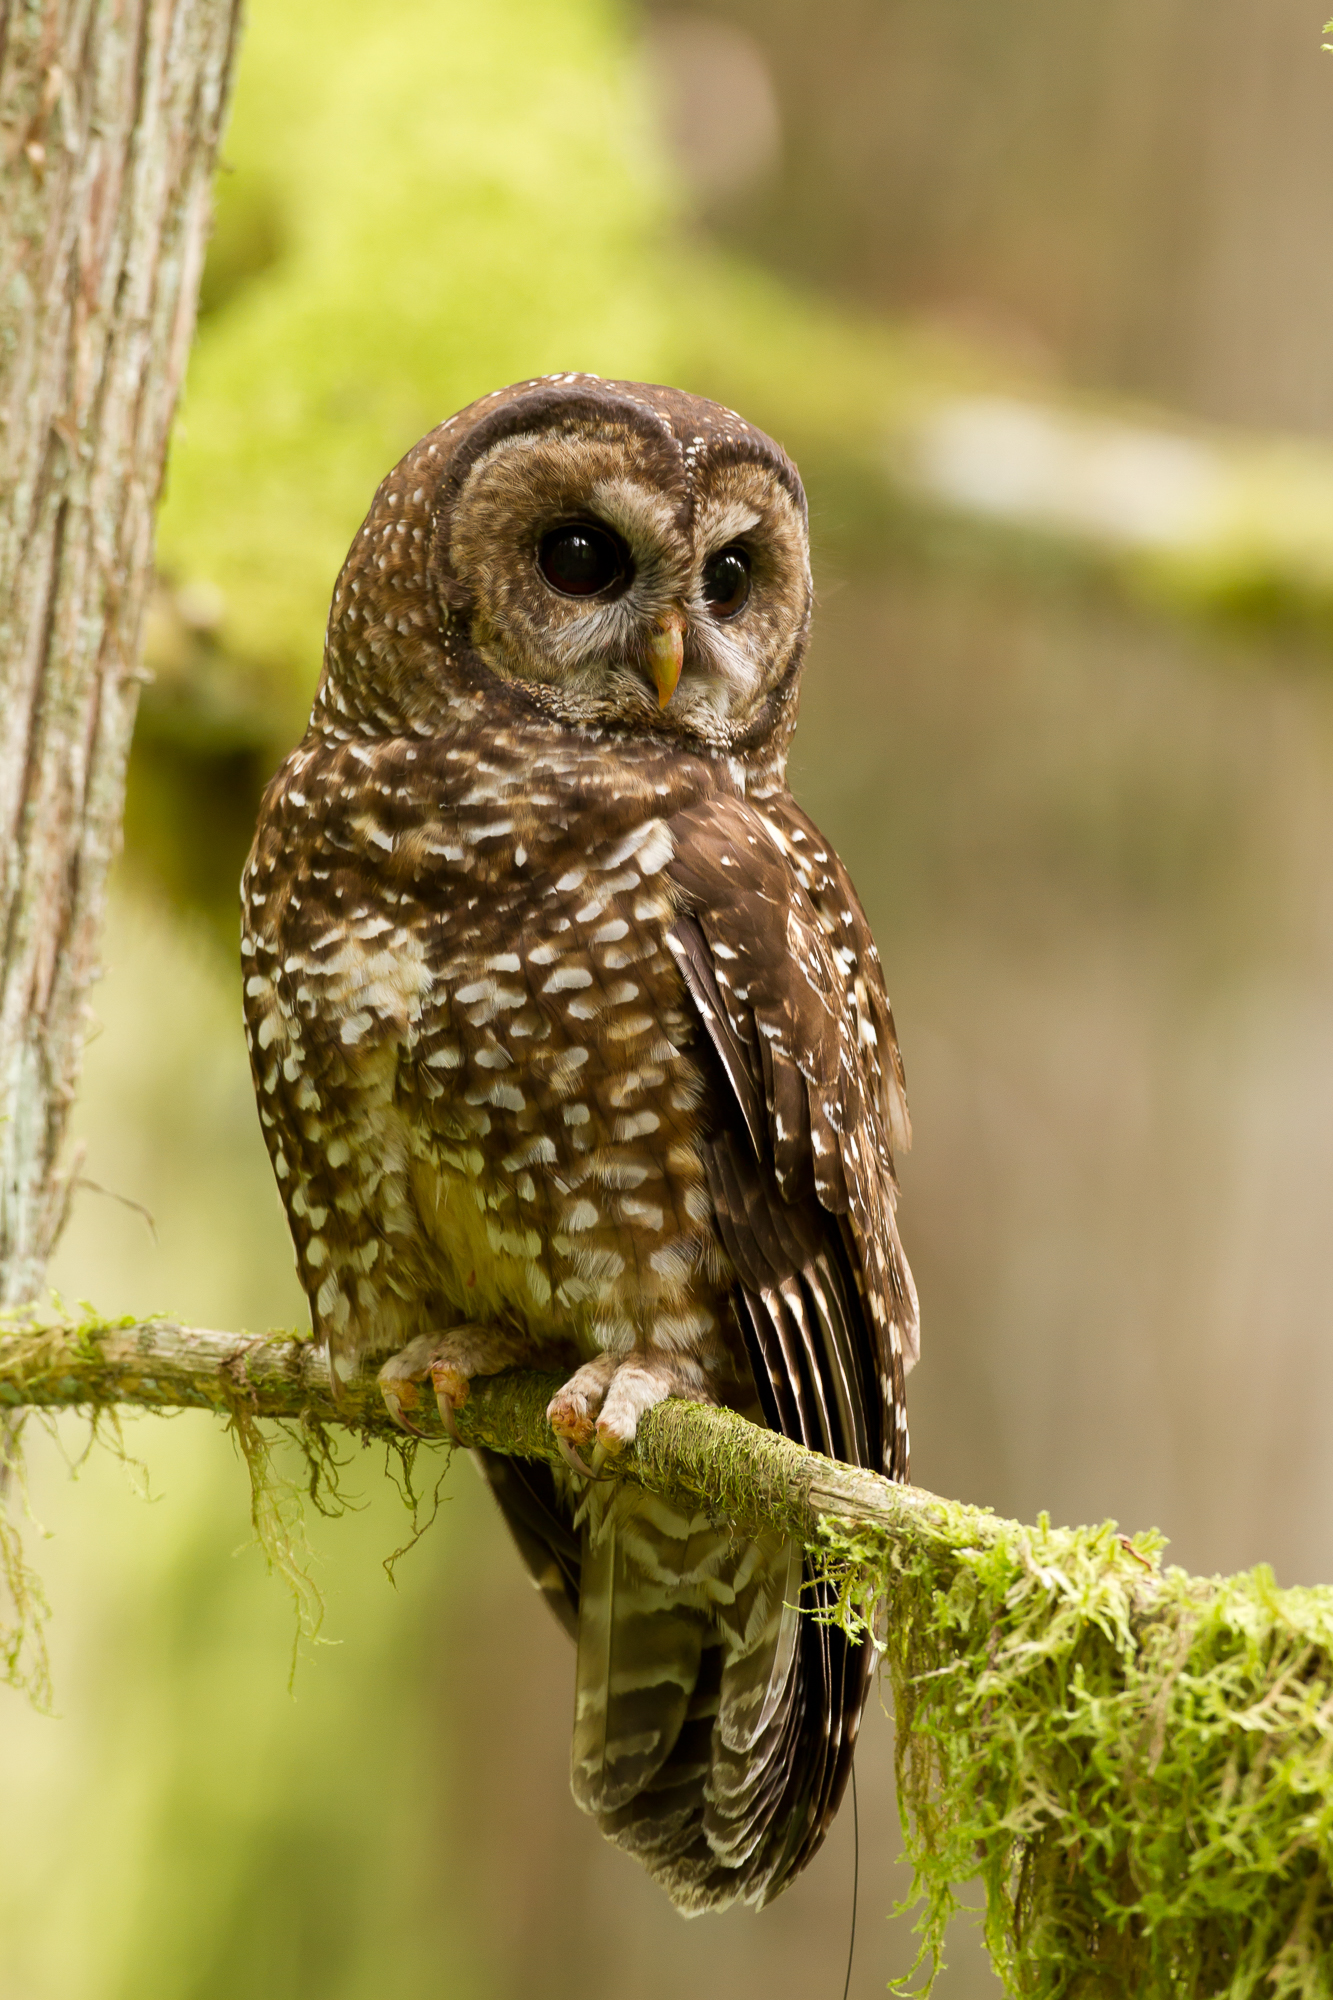 A juvenile spotted owl takes up temporary residence on its dispersal, Cayoosh Creek near Lillooet, B.C. Photo: Jared Hobbs